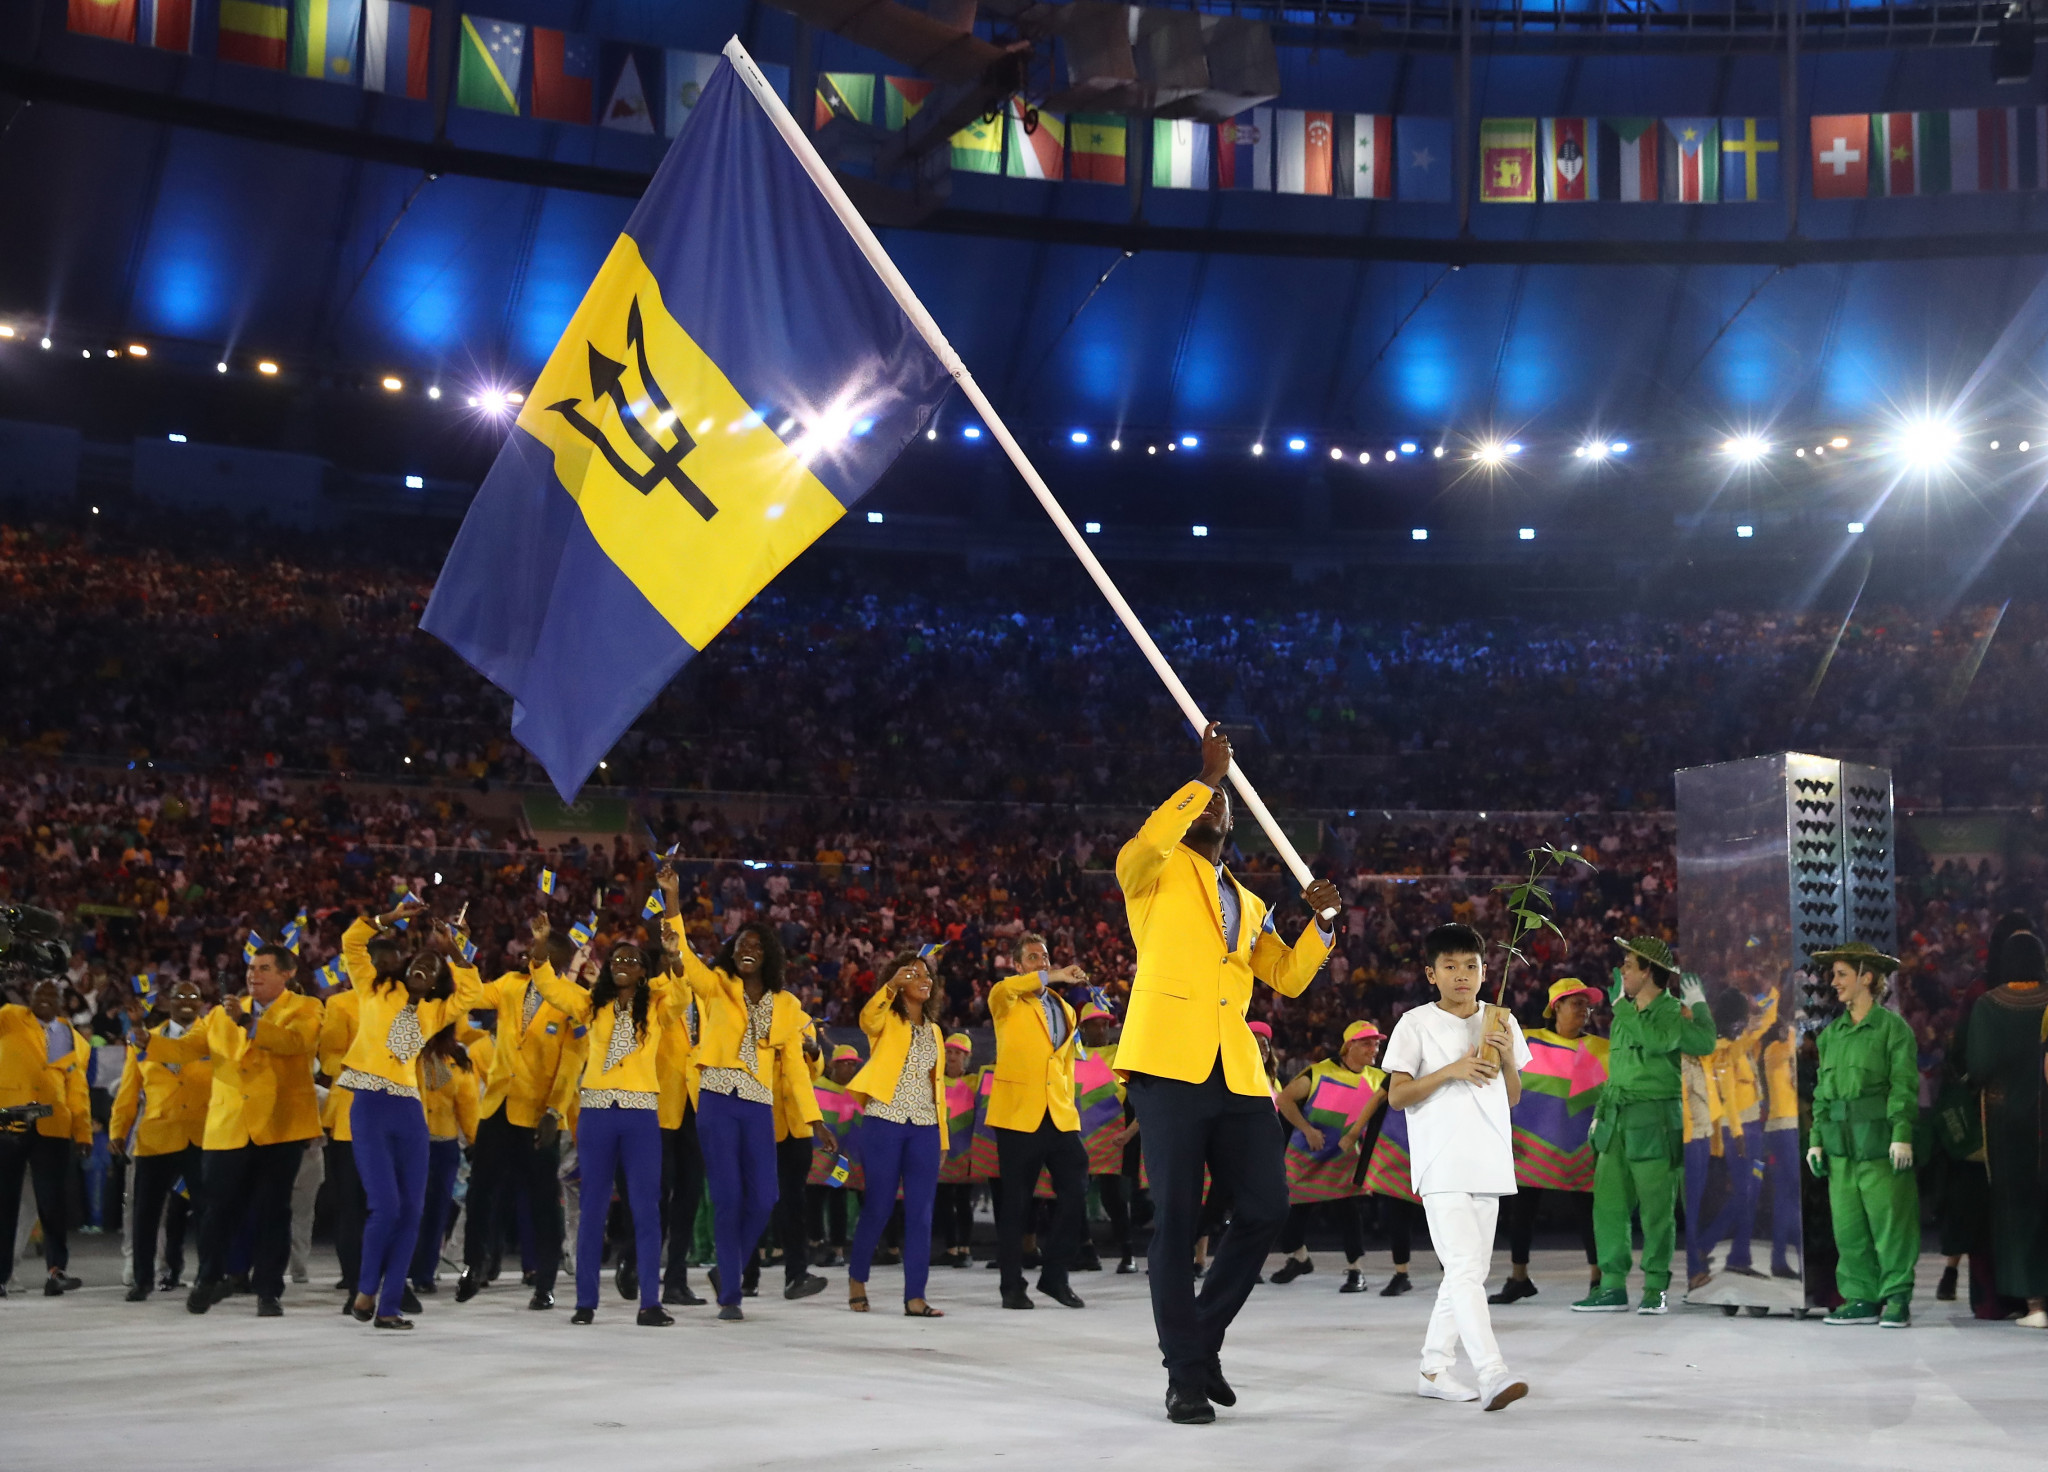 Sandra Osborne, as well as leading the Barbados Olympic Association, is a Commonwealth Games Federation Executive Board member and sits on the Birmingham 2022 Board of Directors ©Getty Images